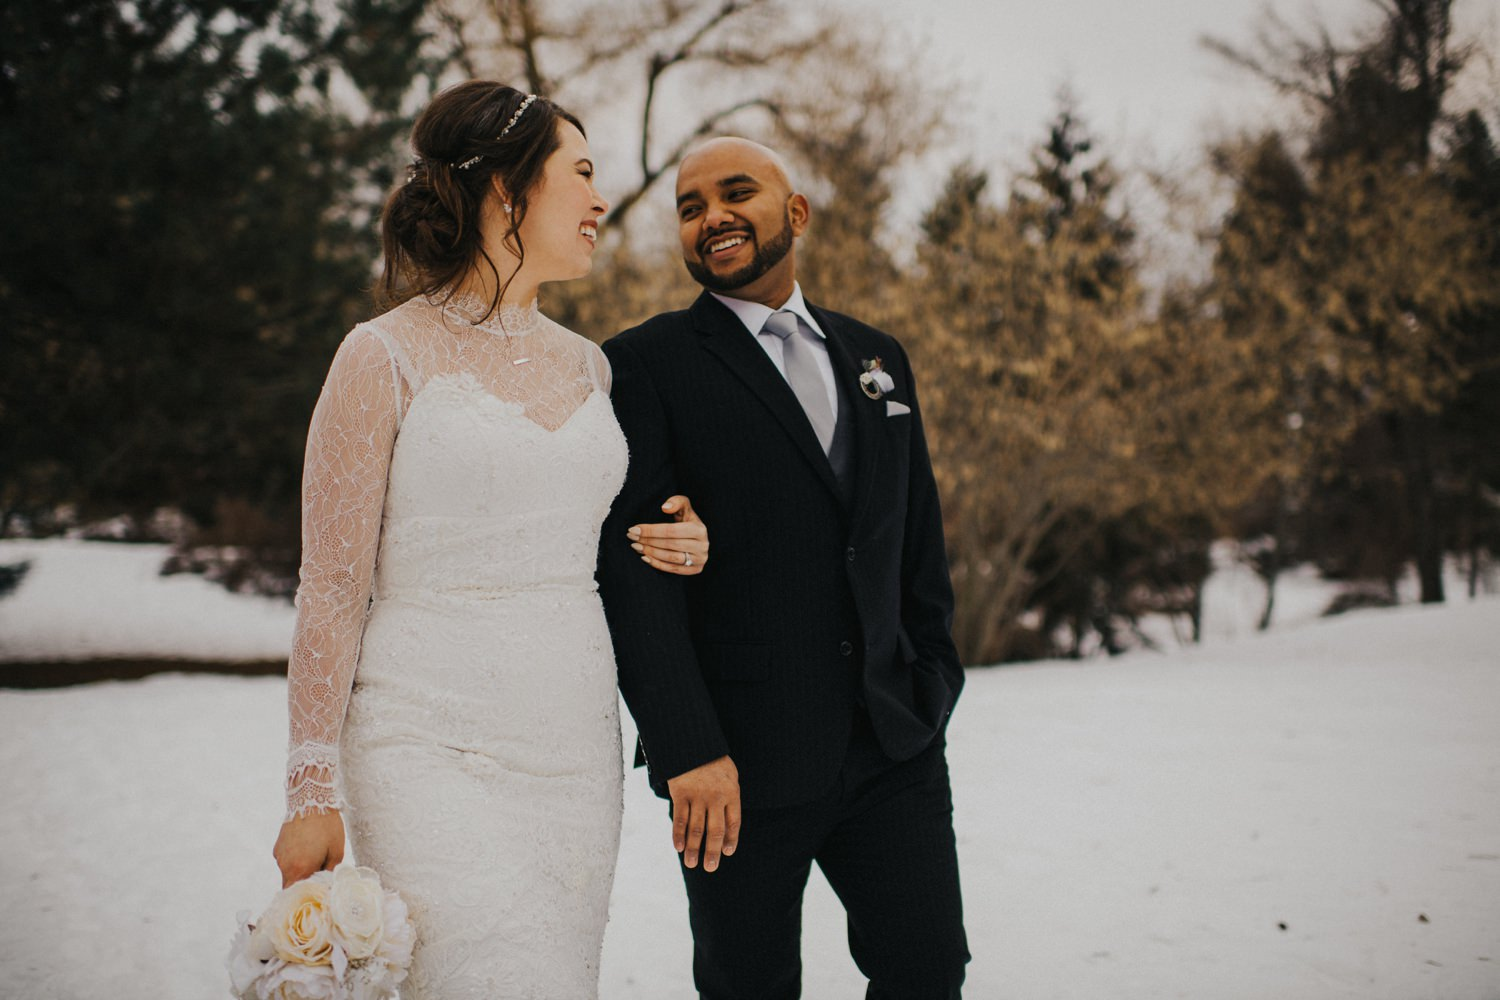 Kelowna Winter Wedding - Joelsview Photography_0104